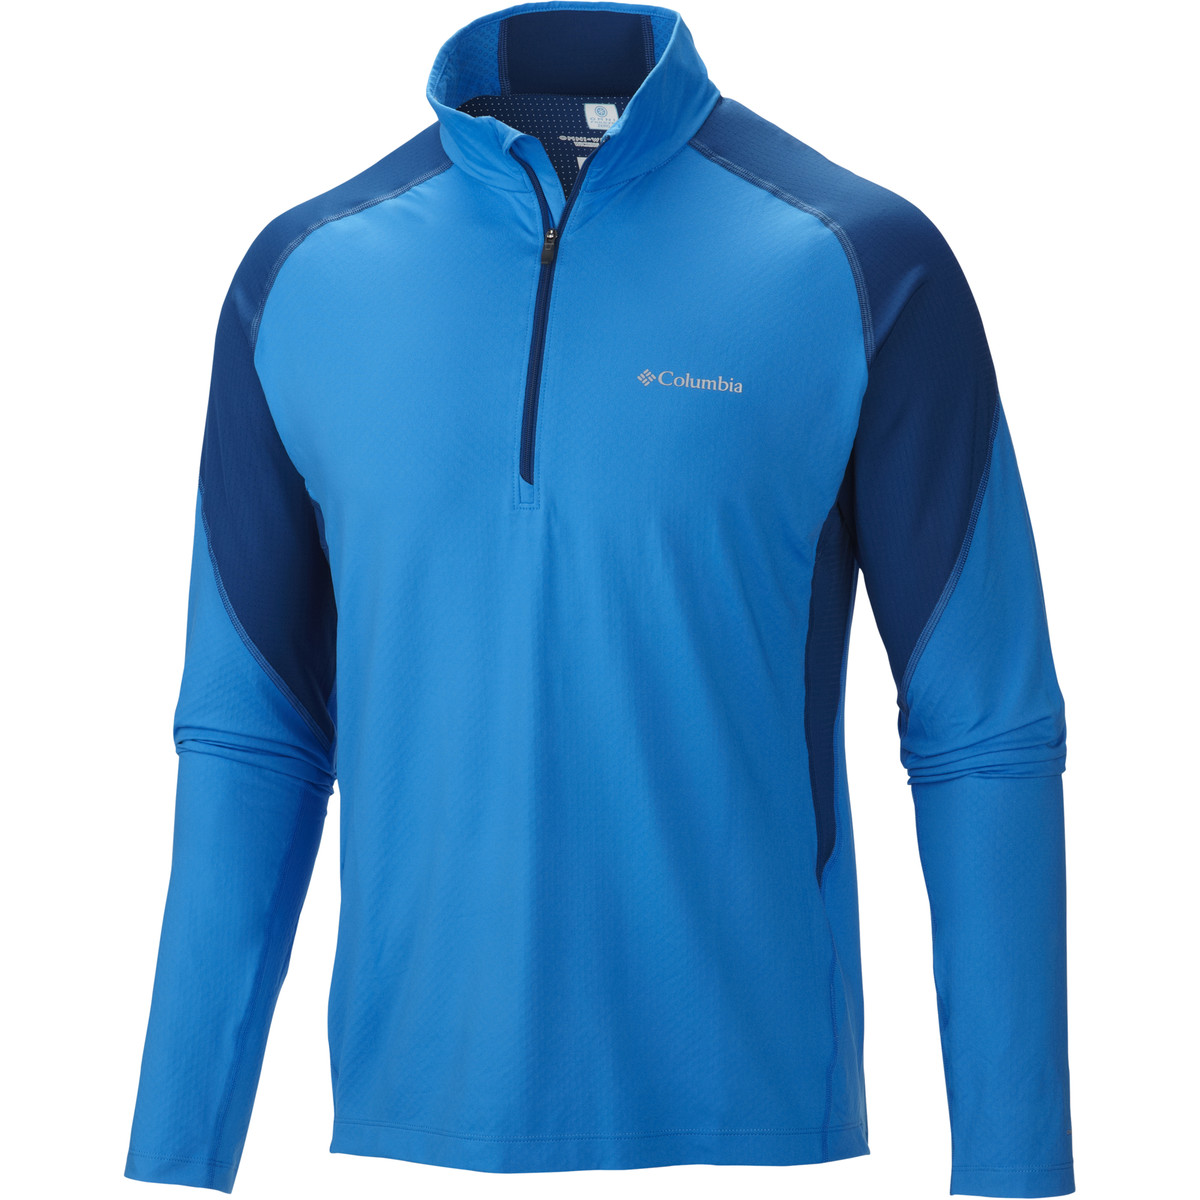 Columbia Freeze Degree II Half Zip Shirt